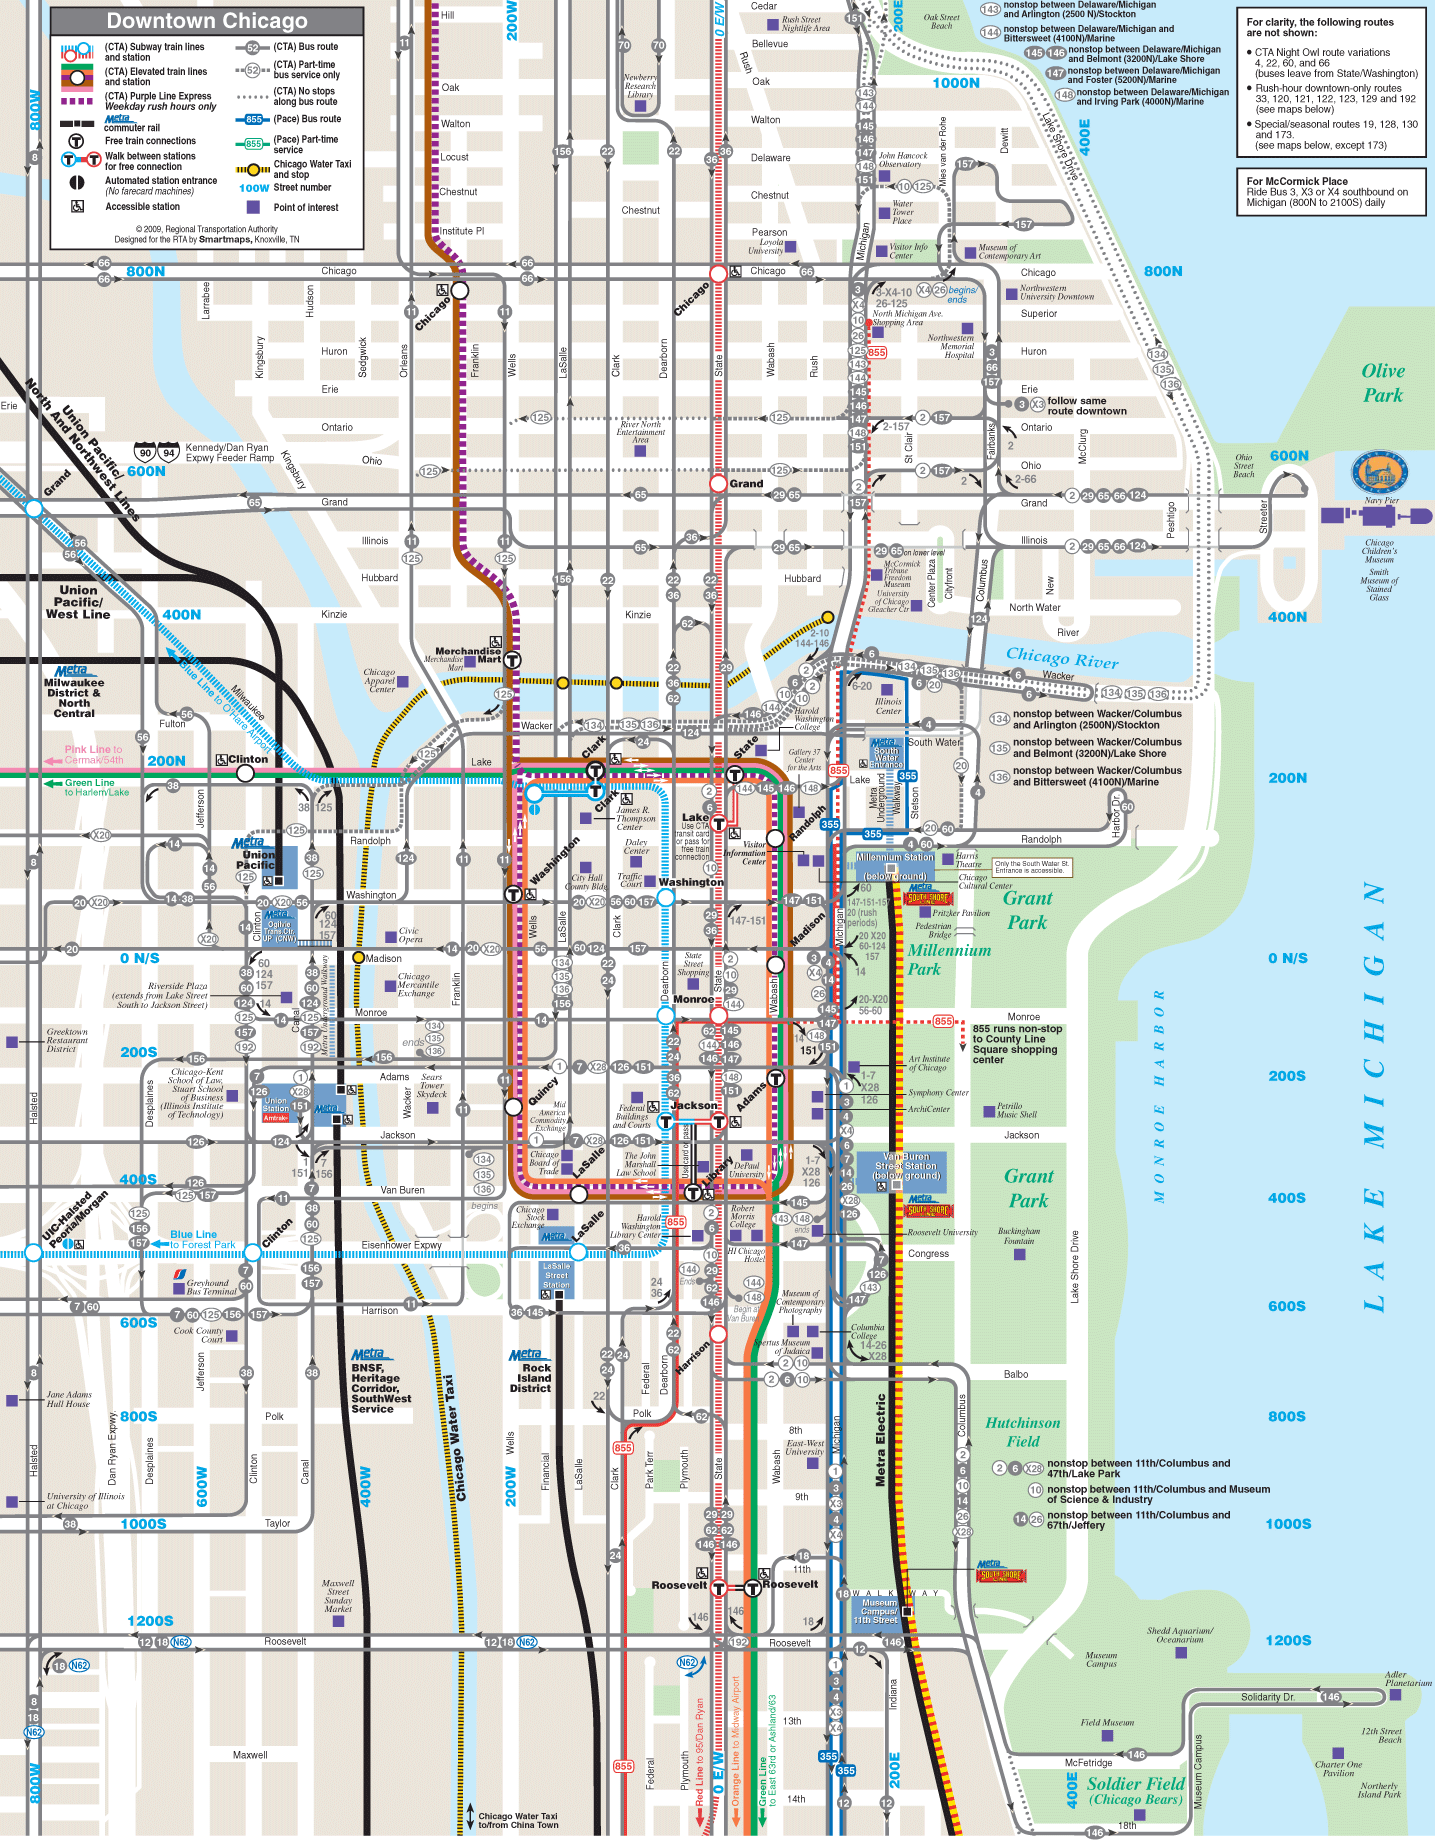 chicago downtown transport map • mapsofnet - click on the chicago downtown transport map